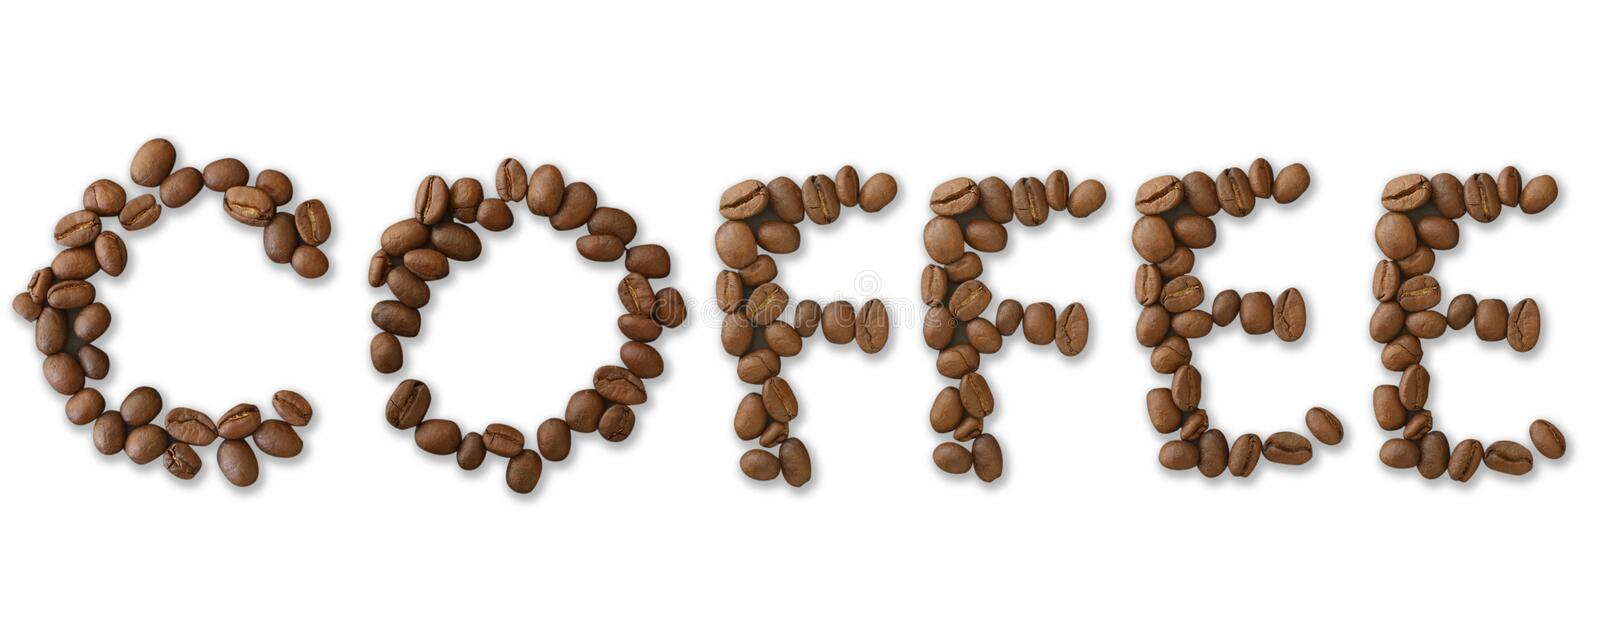 Coffee word made of coffee beans on white background - close up concept - stock. Illustration stock illustration